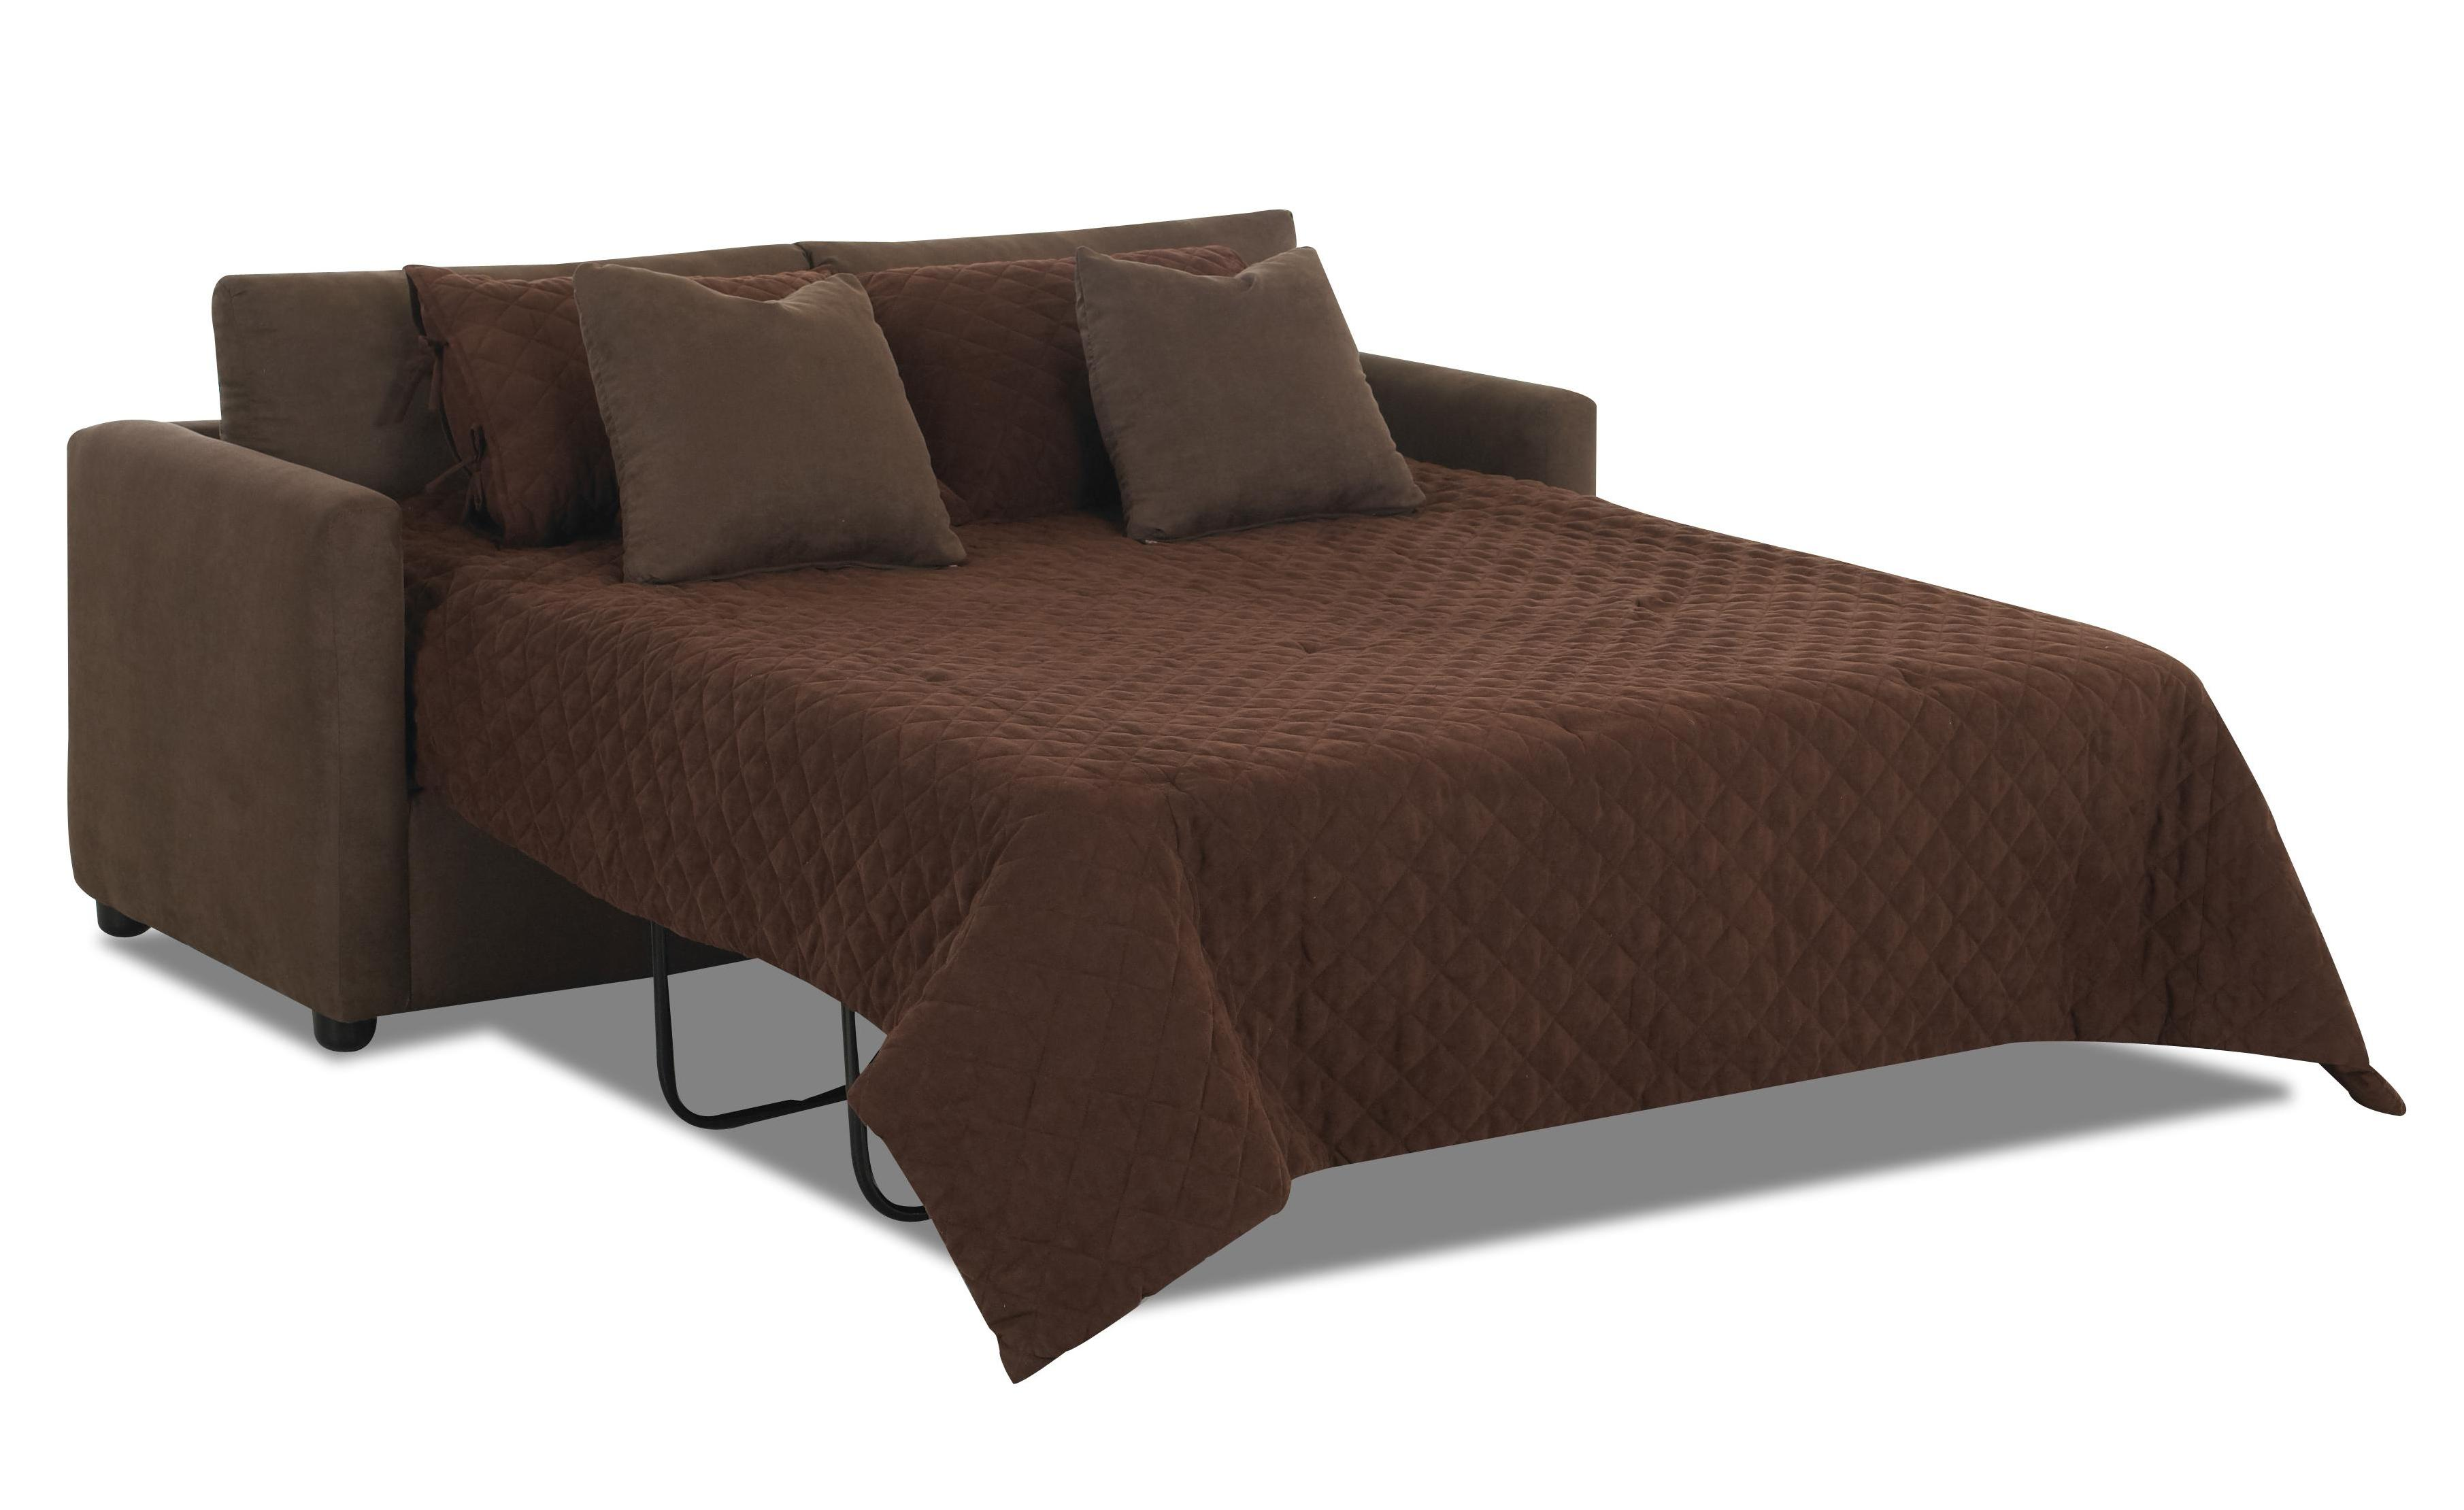 Klaussner Jacobs Casual Queen Sleeper Sofa With Dreamquest